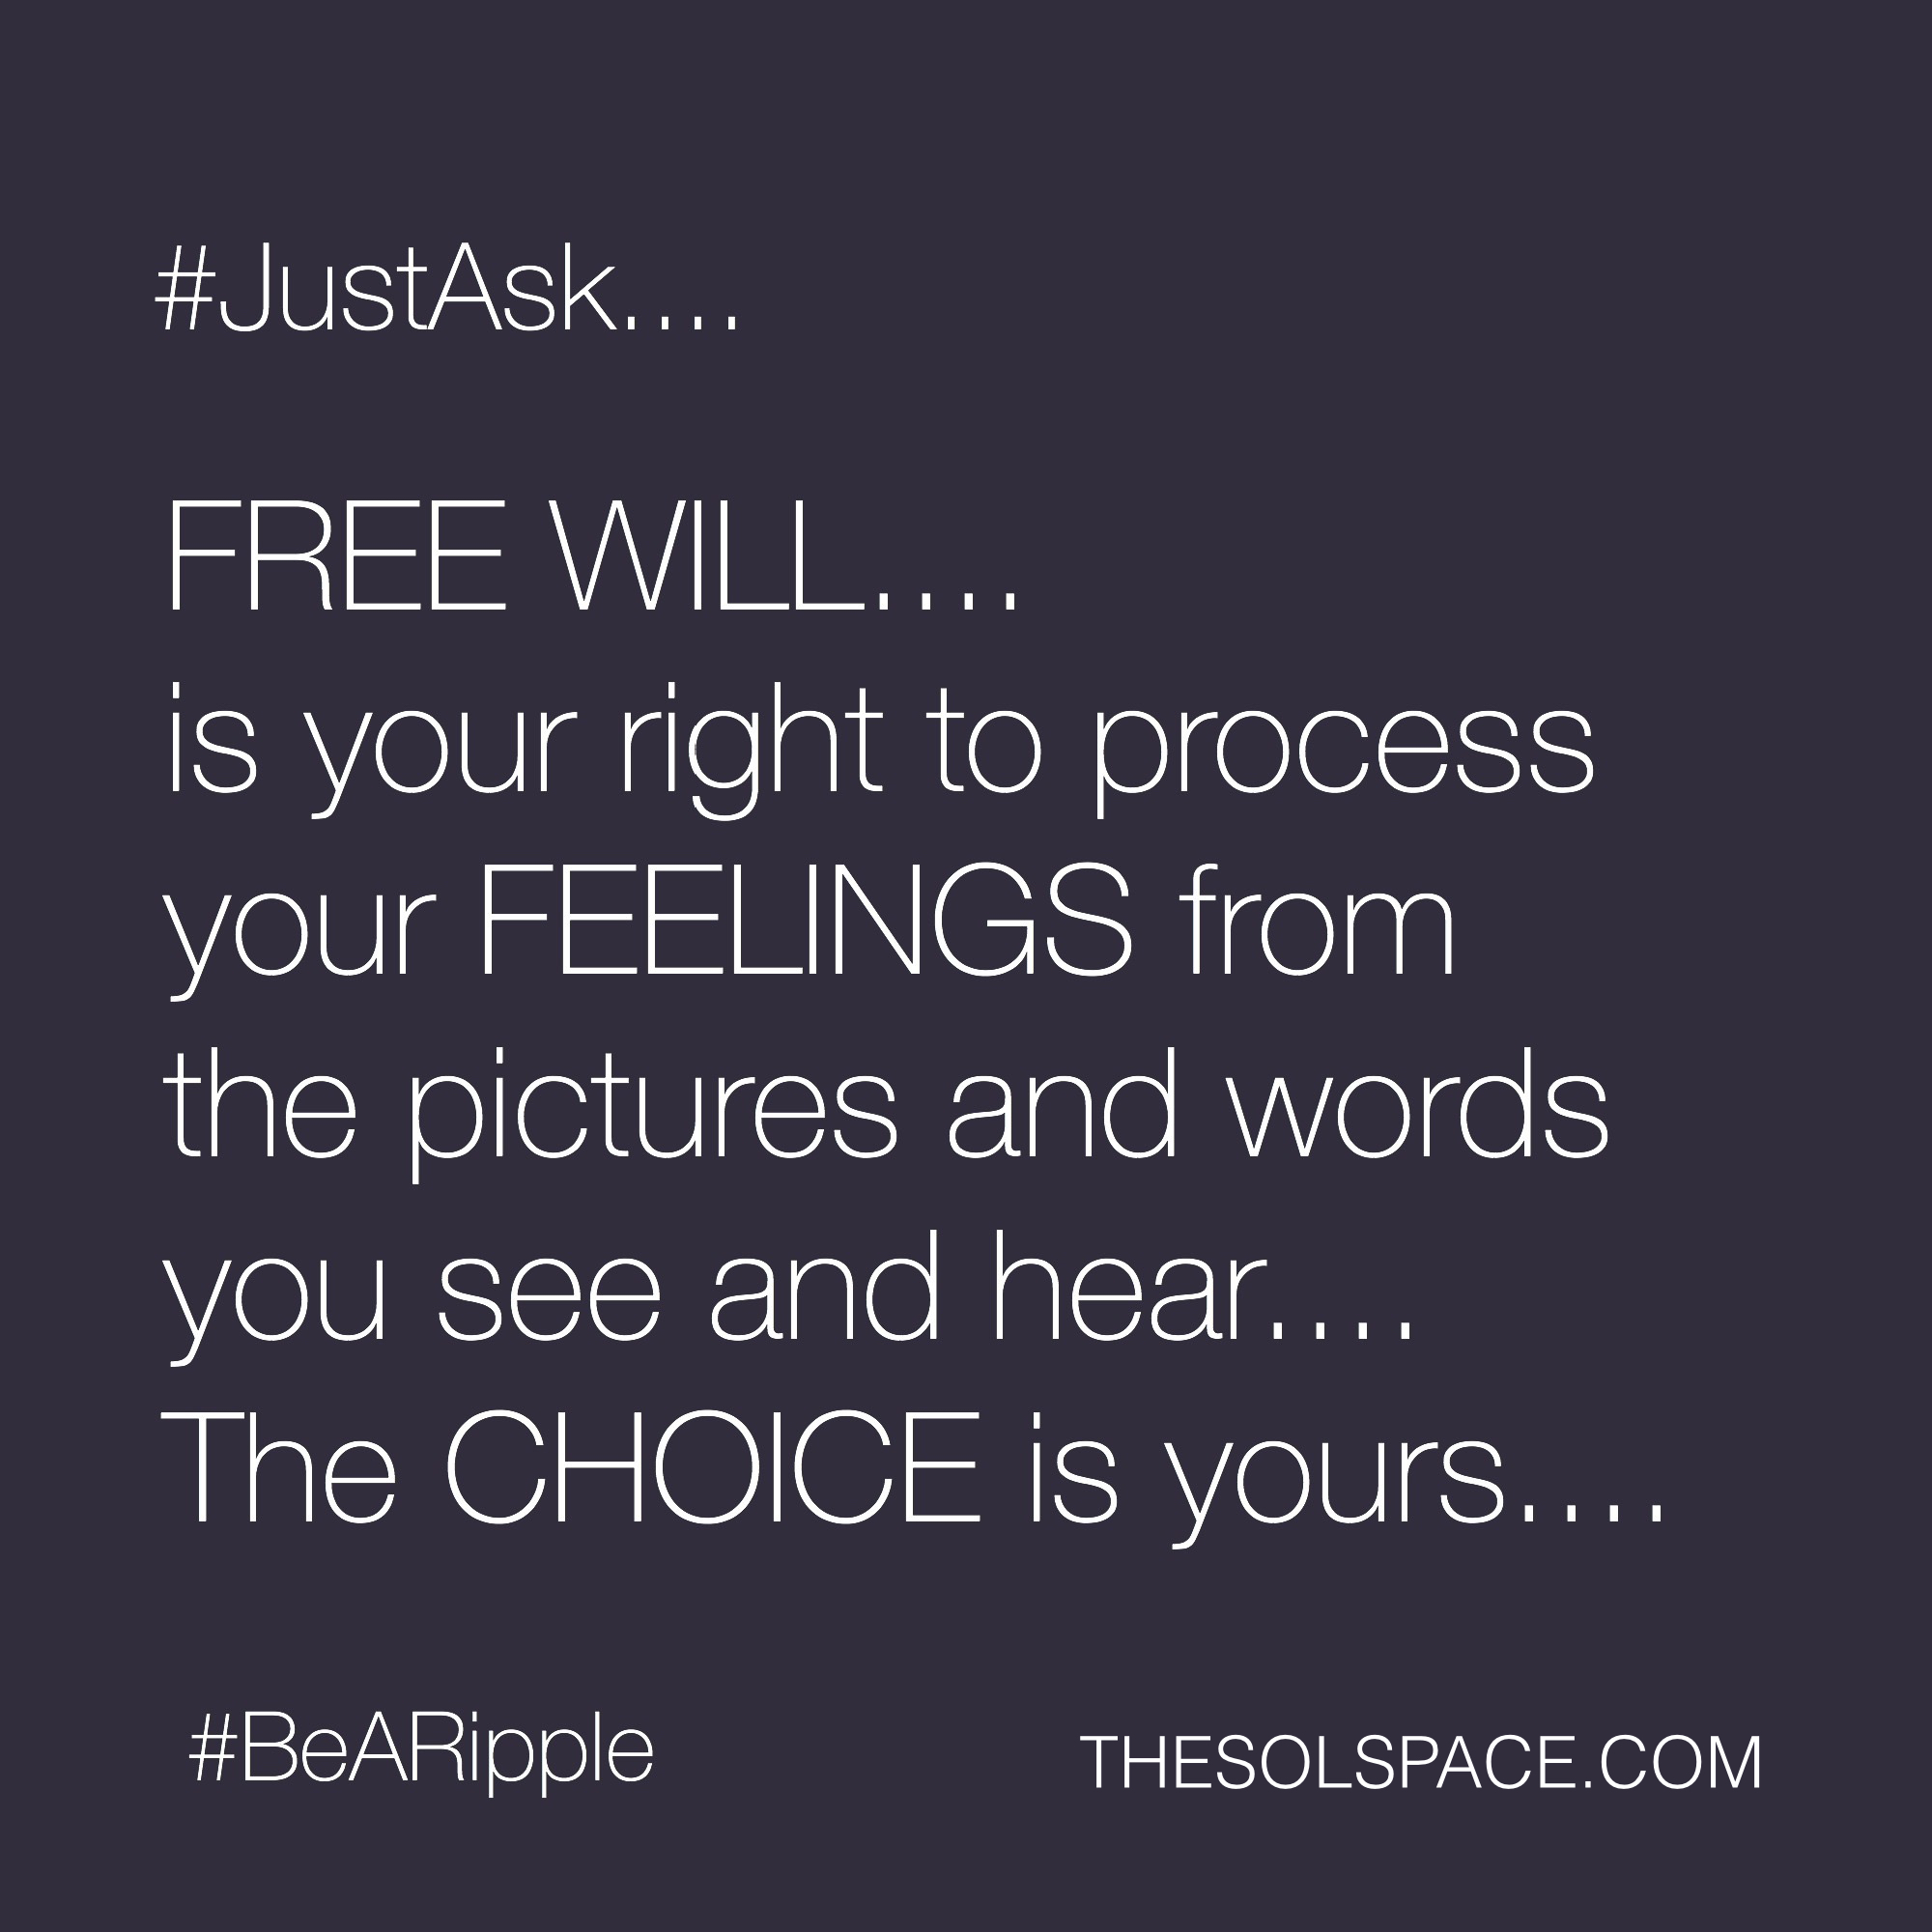 #BeARipple..FREE WILL...is your right to process your FEELINGS from the pictures and words you see and hear..the CHOICE is yours @theSOLspace